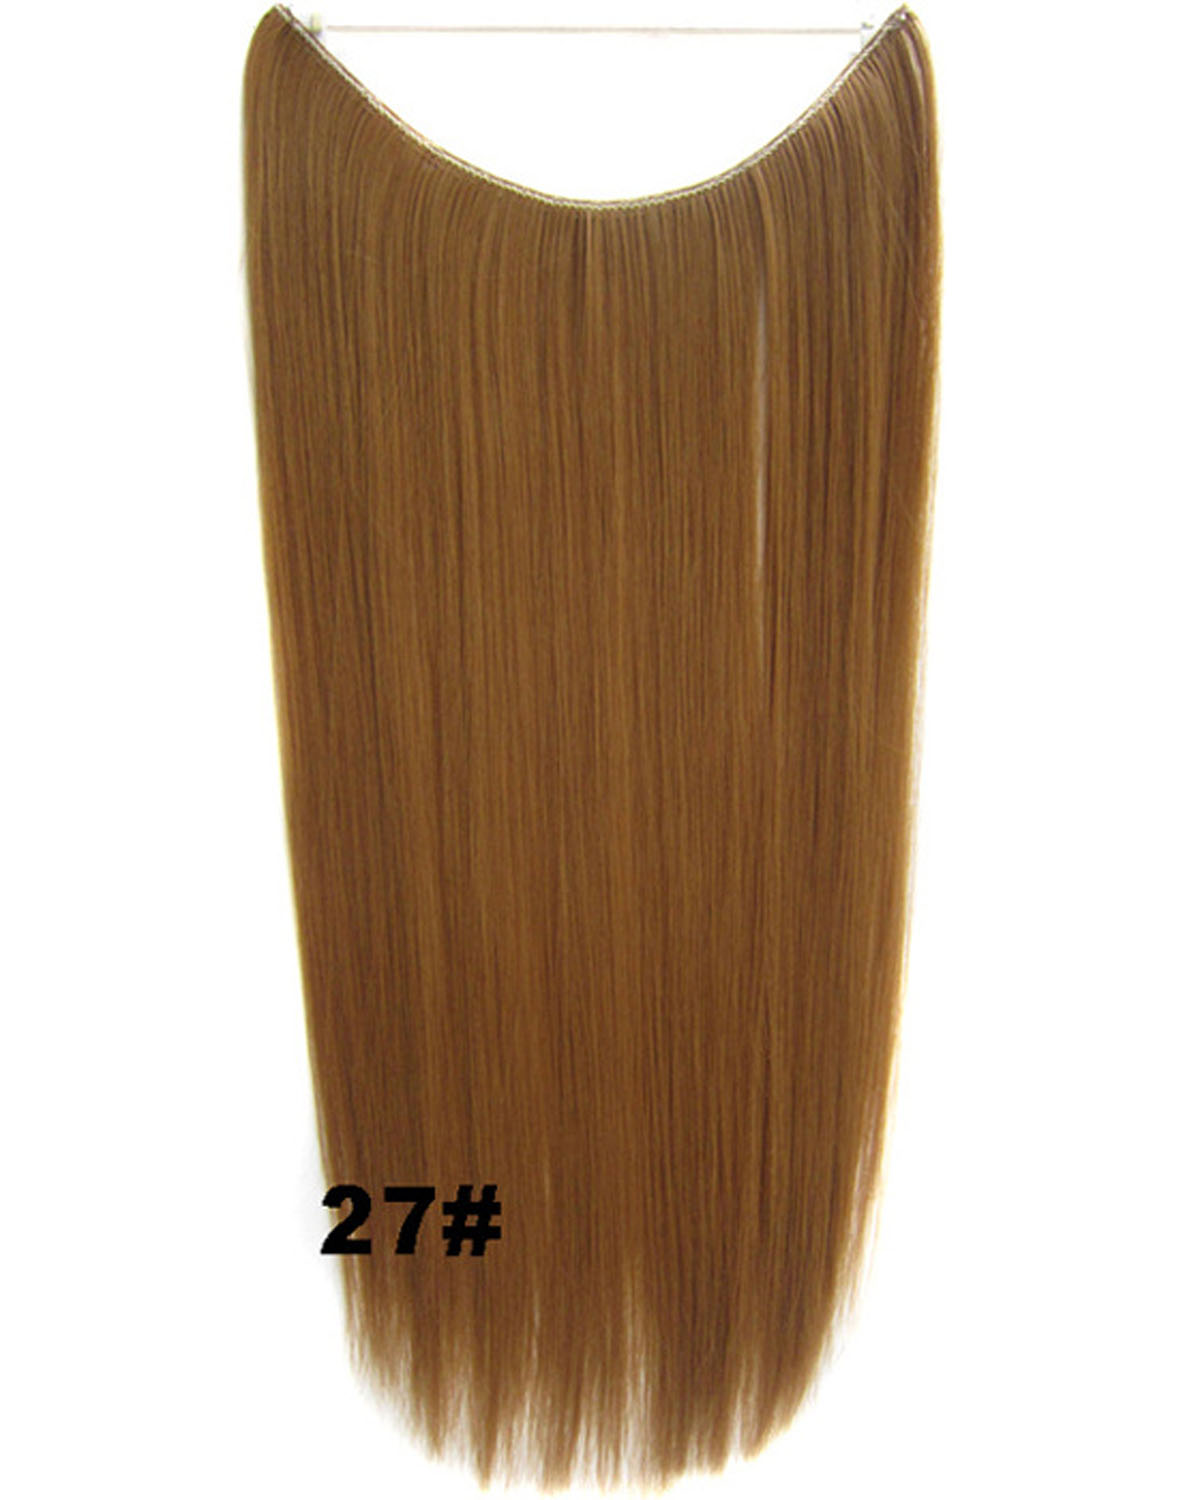 22 Inch Fashionable Straight and Long Invisible One Piece Miracle Wire Flip in Synthetic Hair Extension 27#